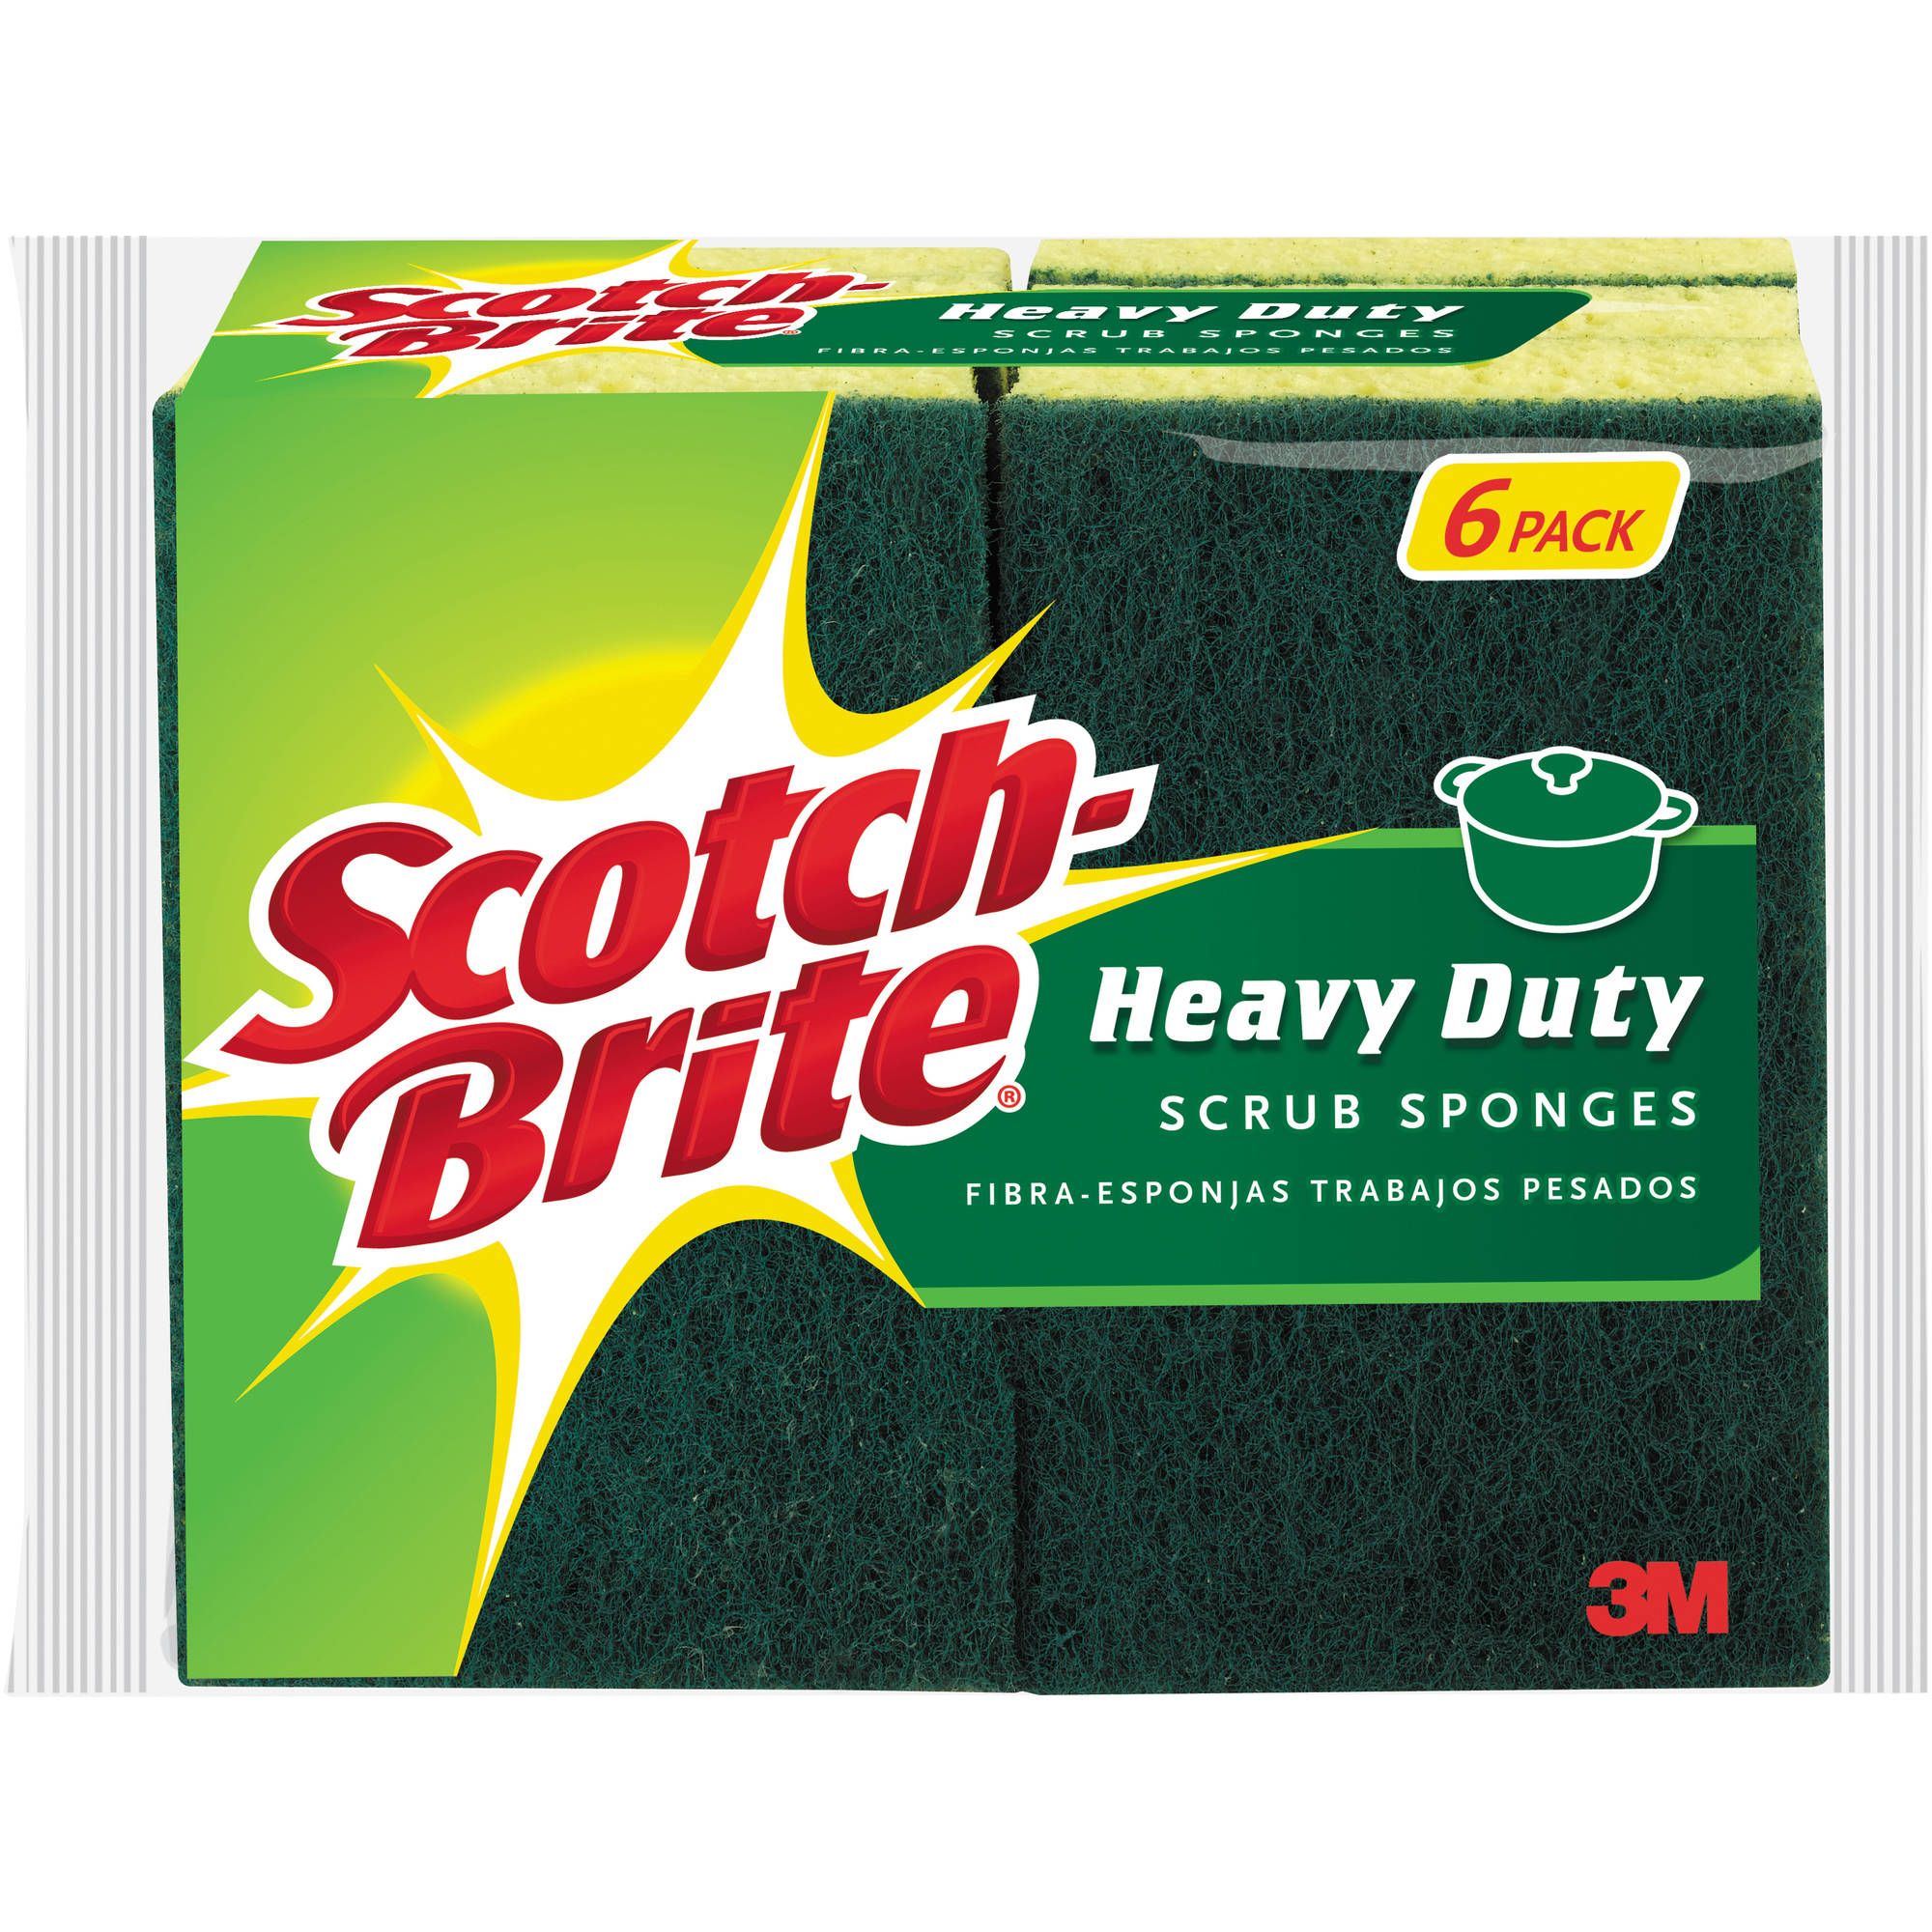 Scotch-Brite Heavy Duty Scrub Sponge 4.5 in x 2.7 in x .6 in, 6/Pack